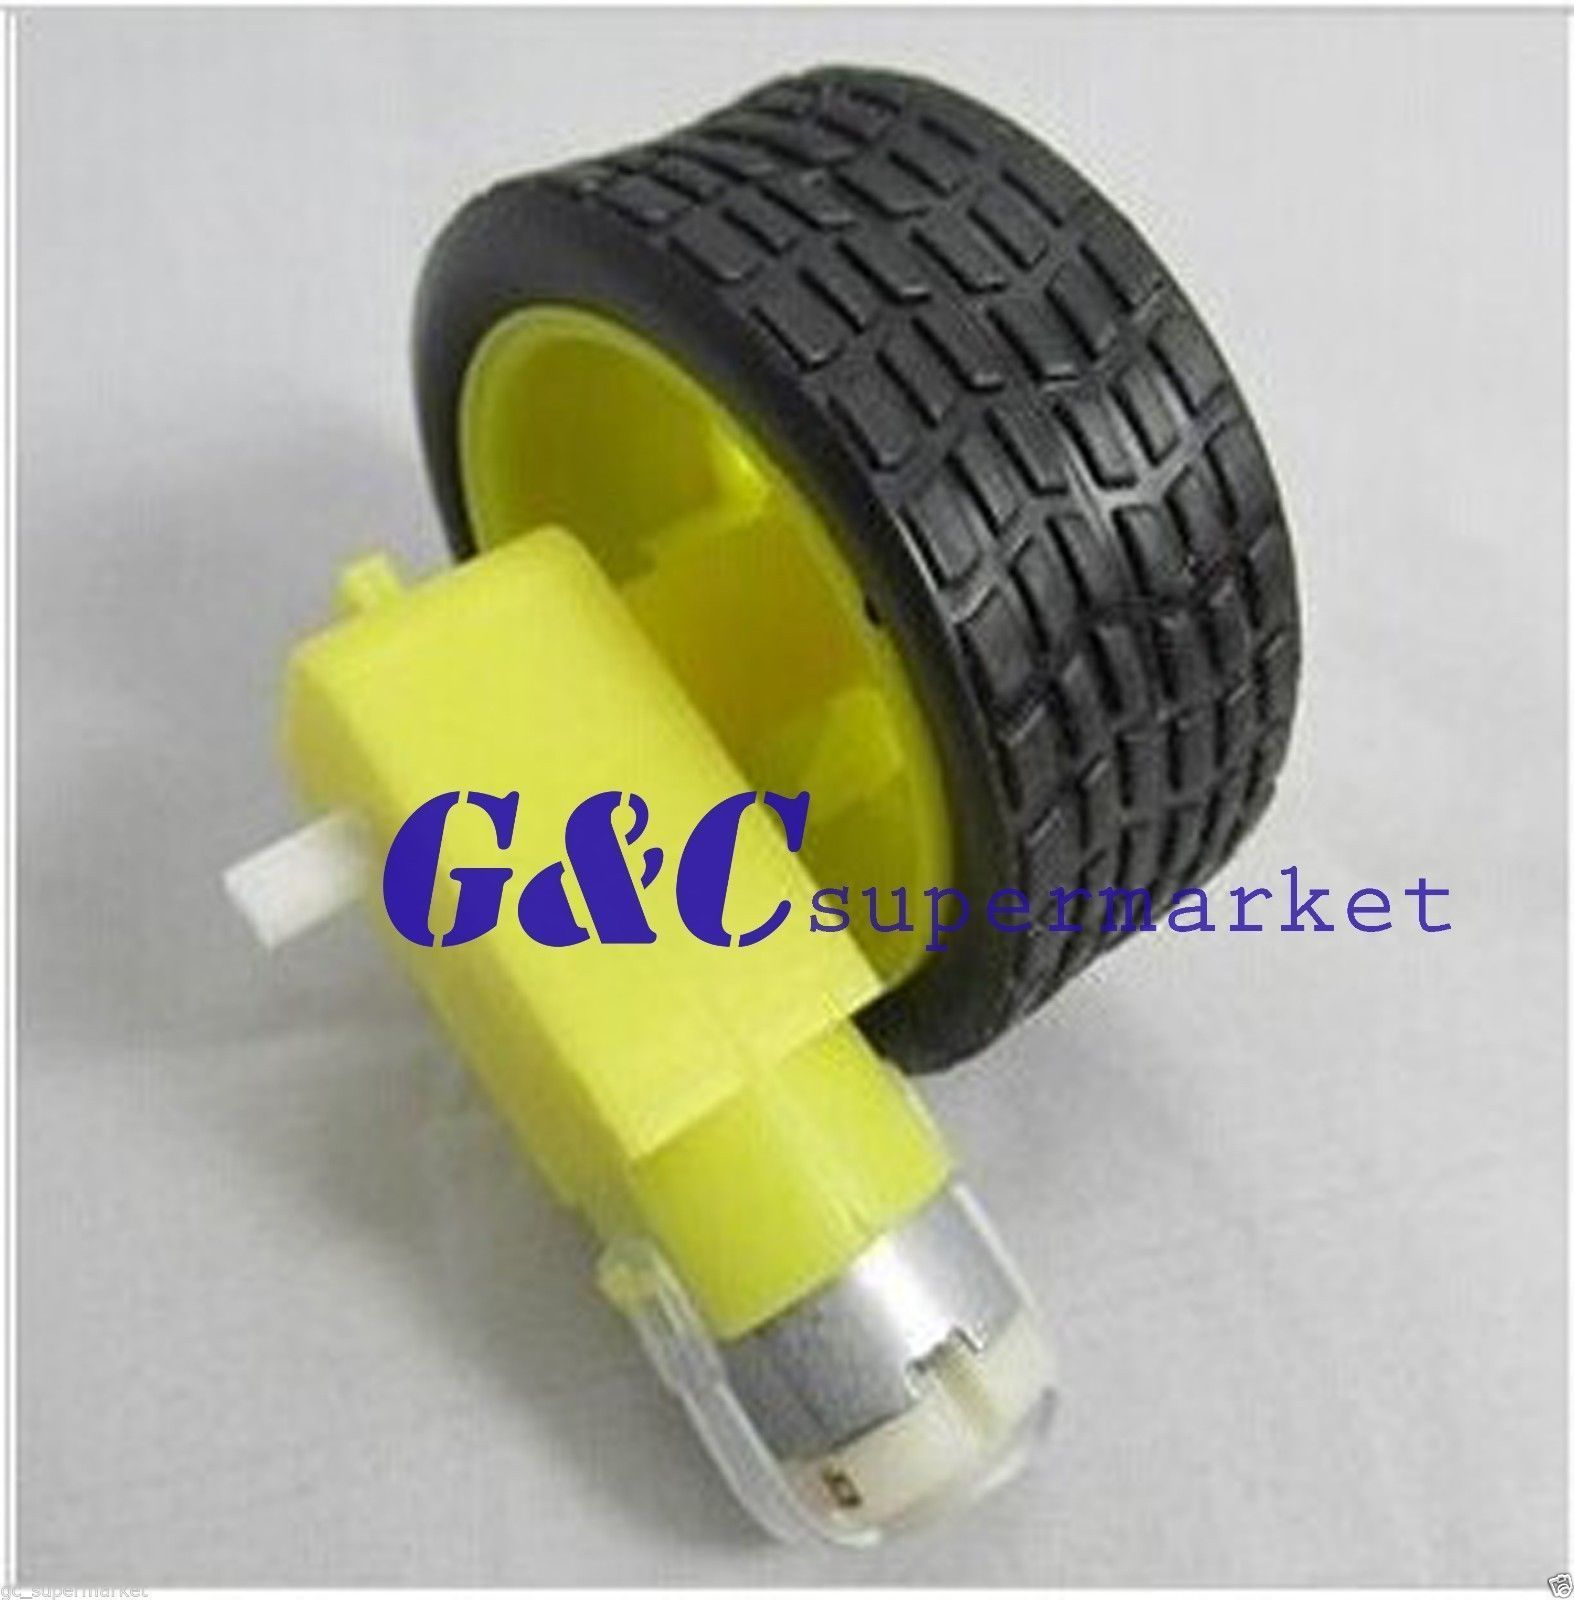 Arduino DC 3-6v Robot Plastic Tire Wheel with Gear Motor smart Car